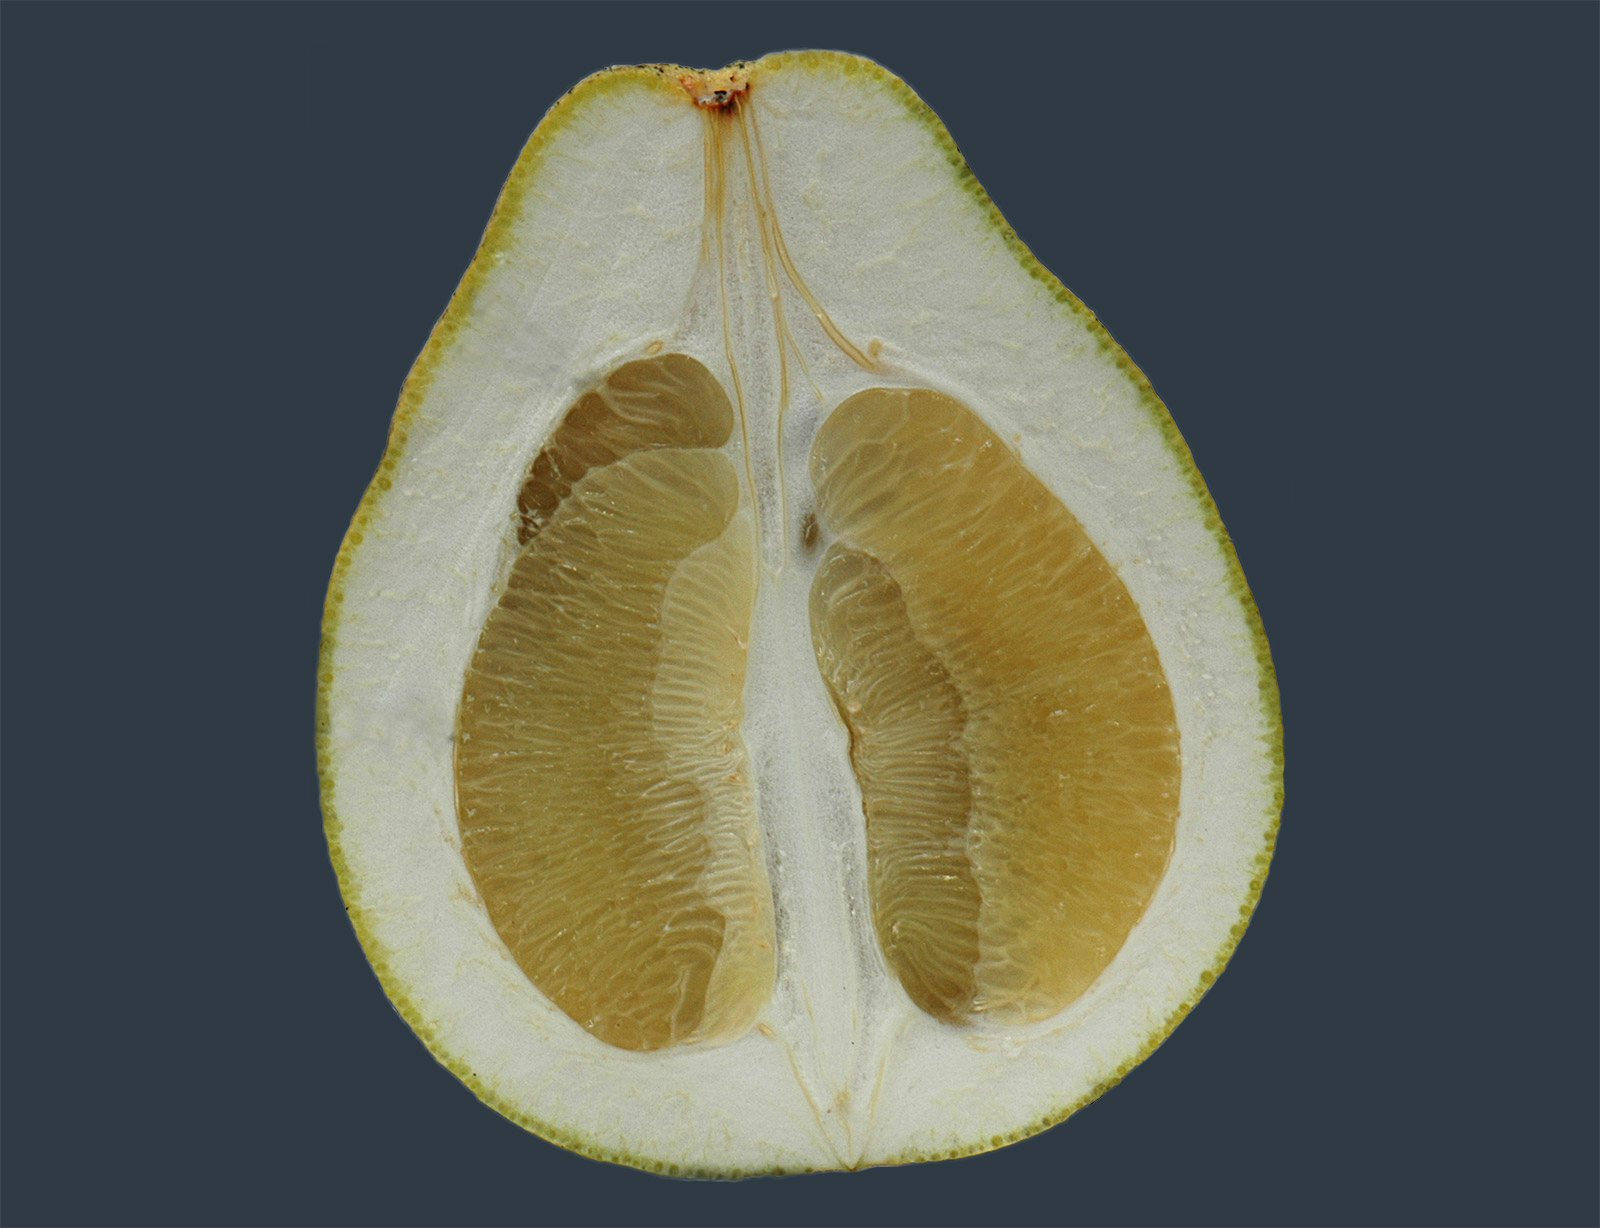 Longitudinal section of a pomelo fruit, showing the thick hierarchically structured peel which is crucial for the excelent impact damping.